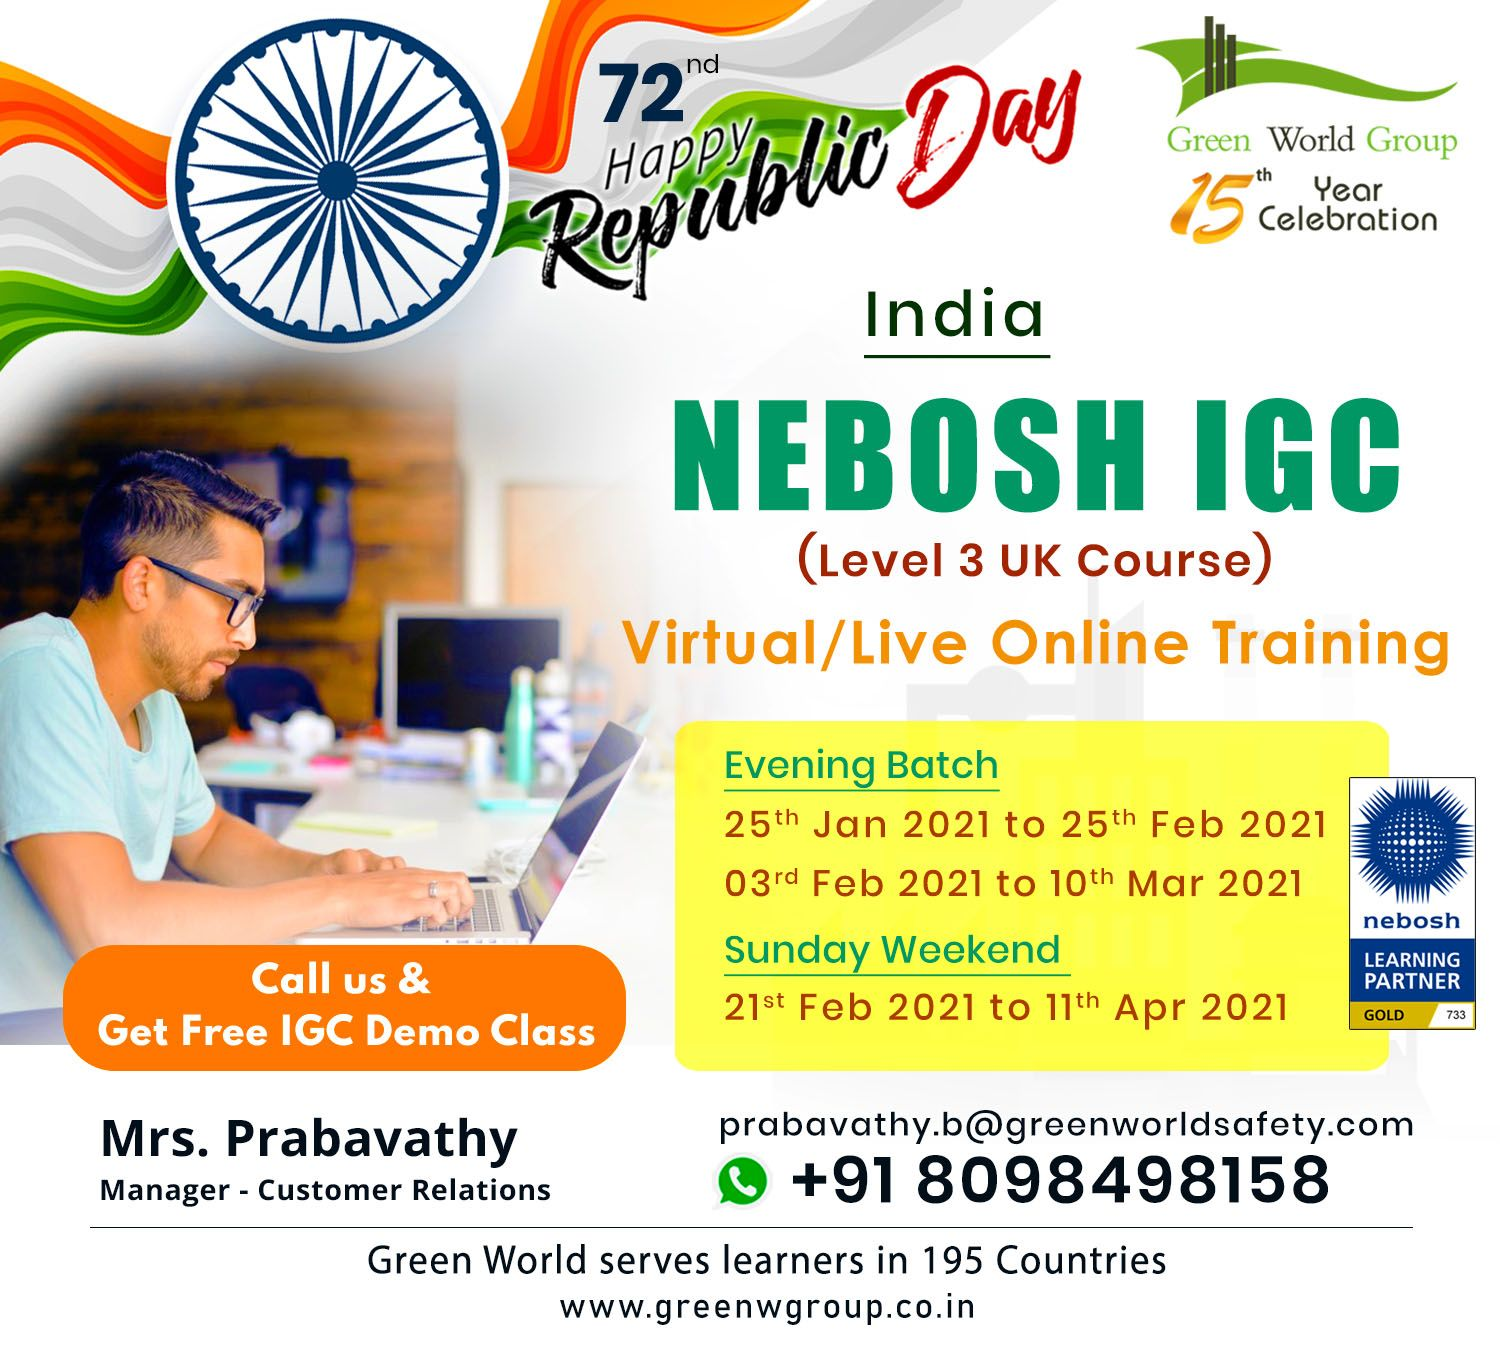 Join the nebosh course in coimbatore this republic day and